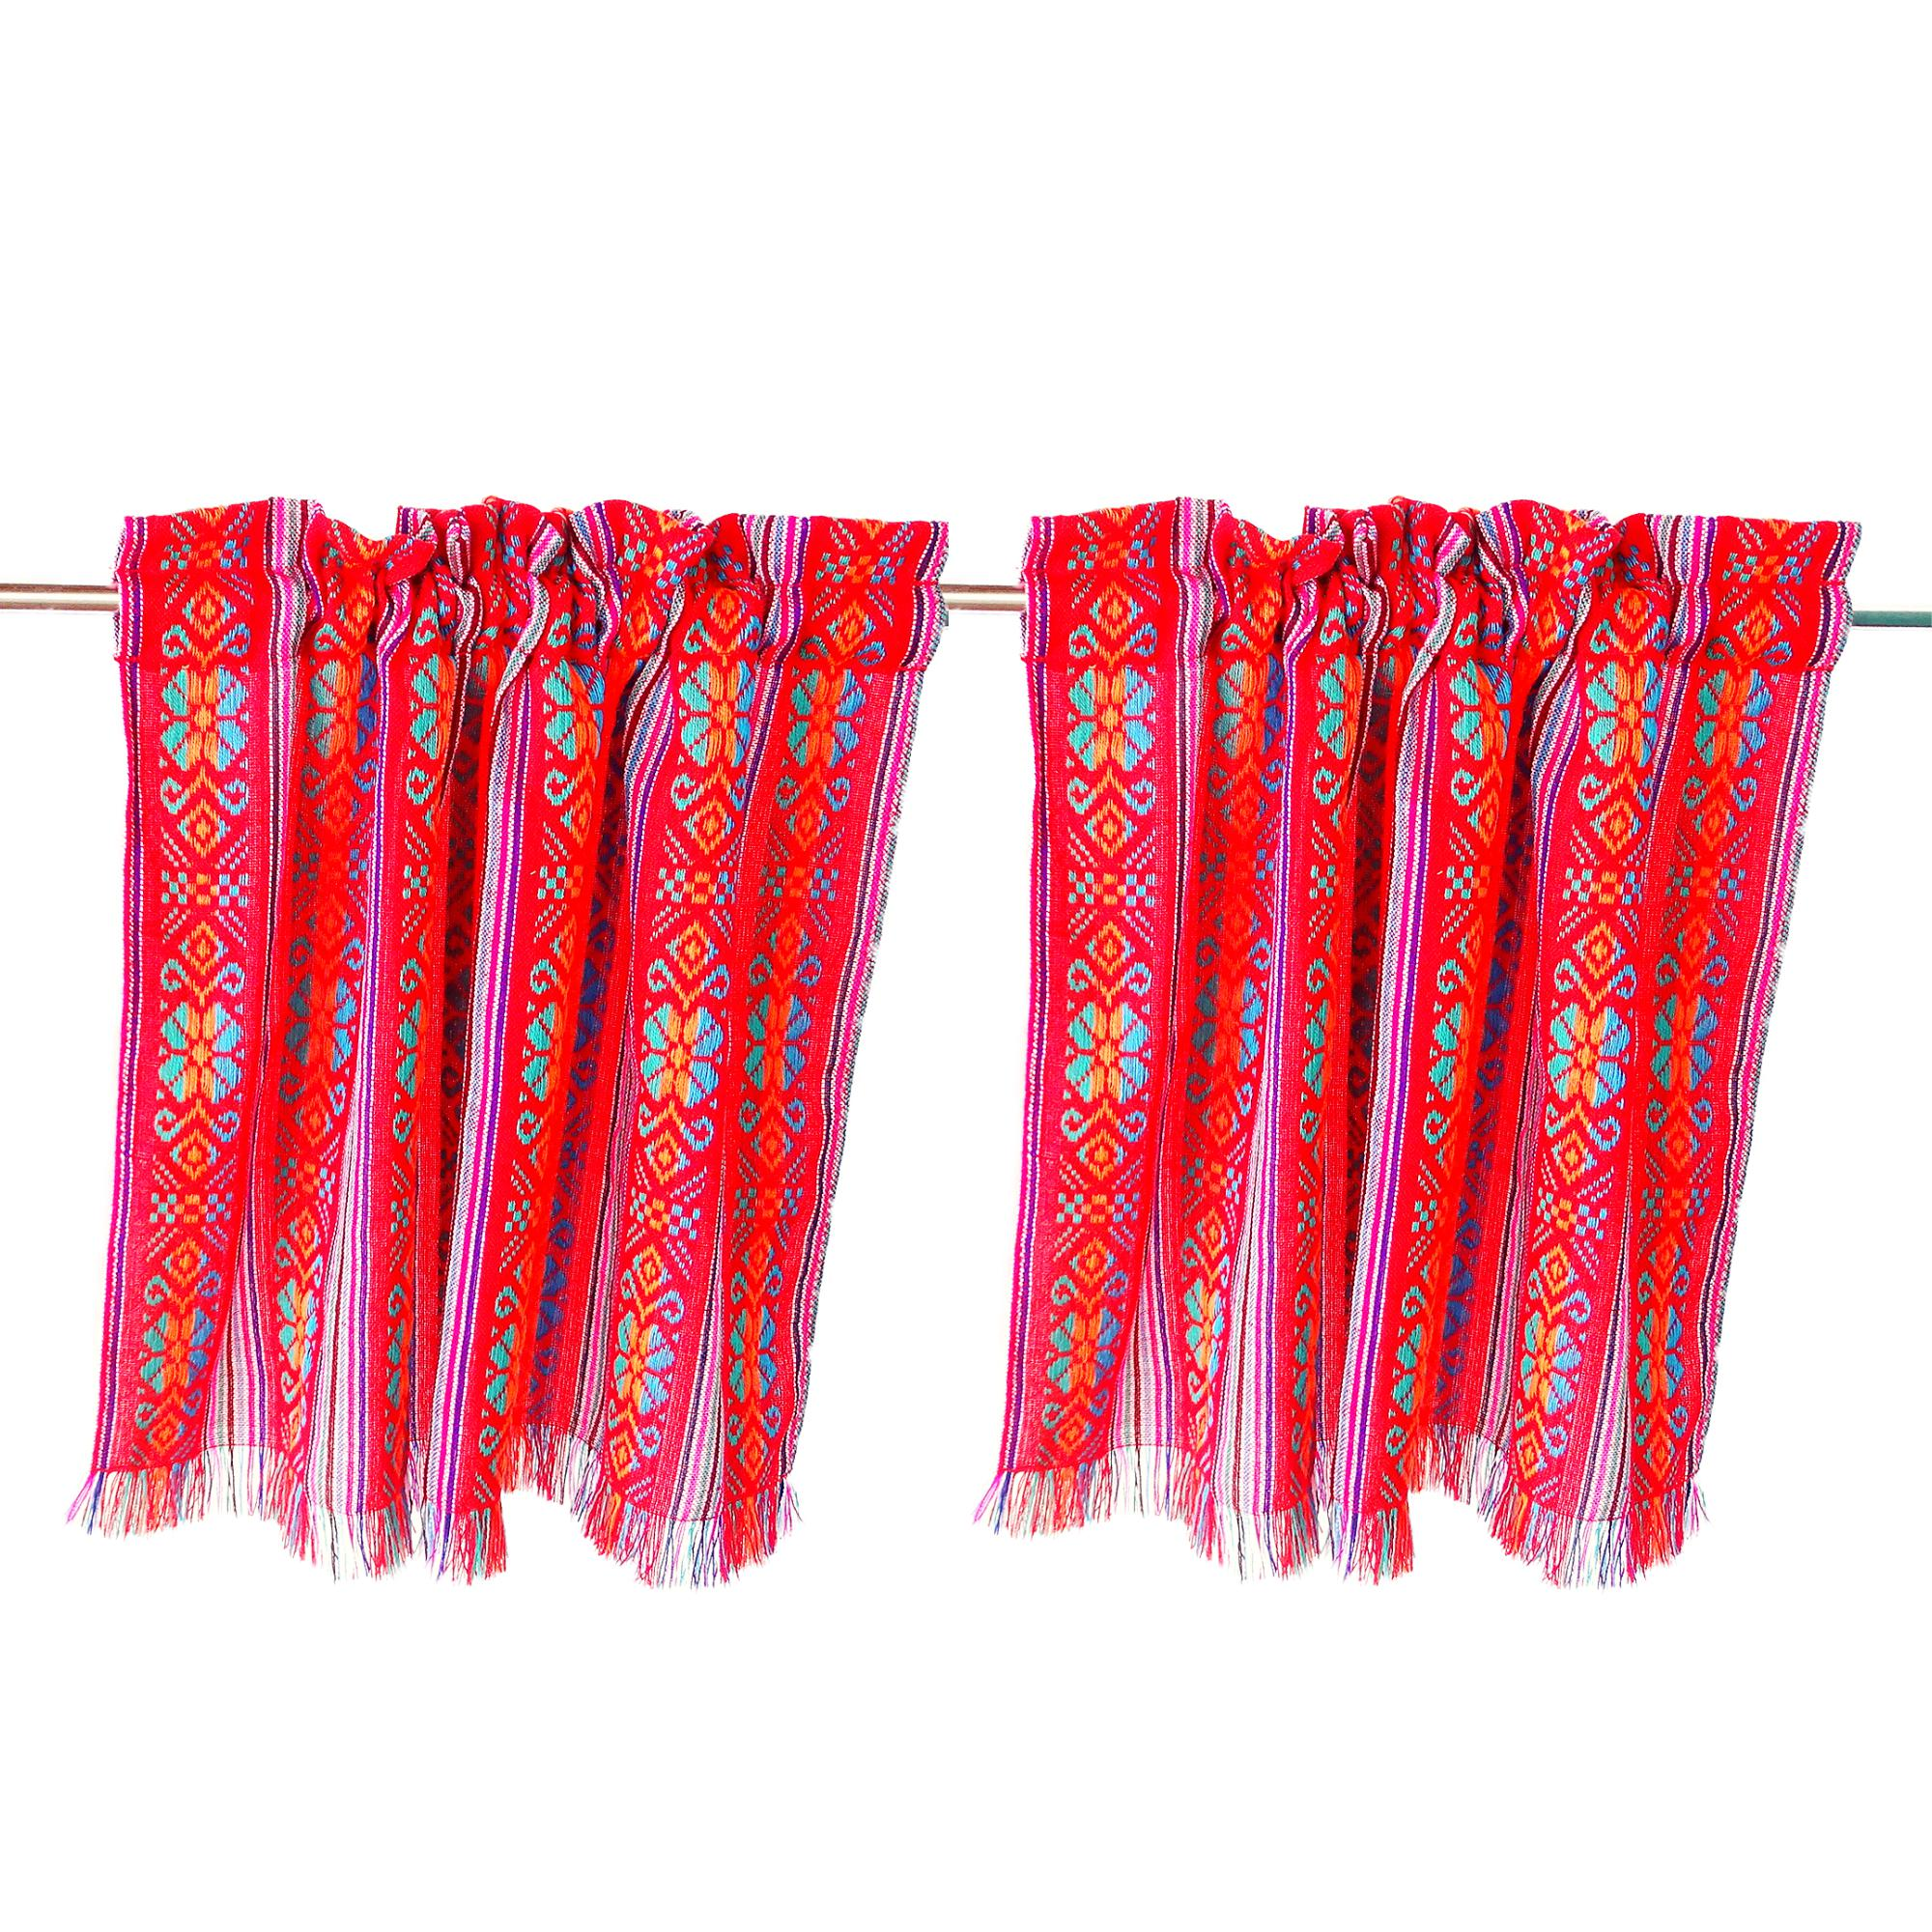 Set of Two Red Tribal Style curtains made from Mexican fabrics